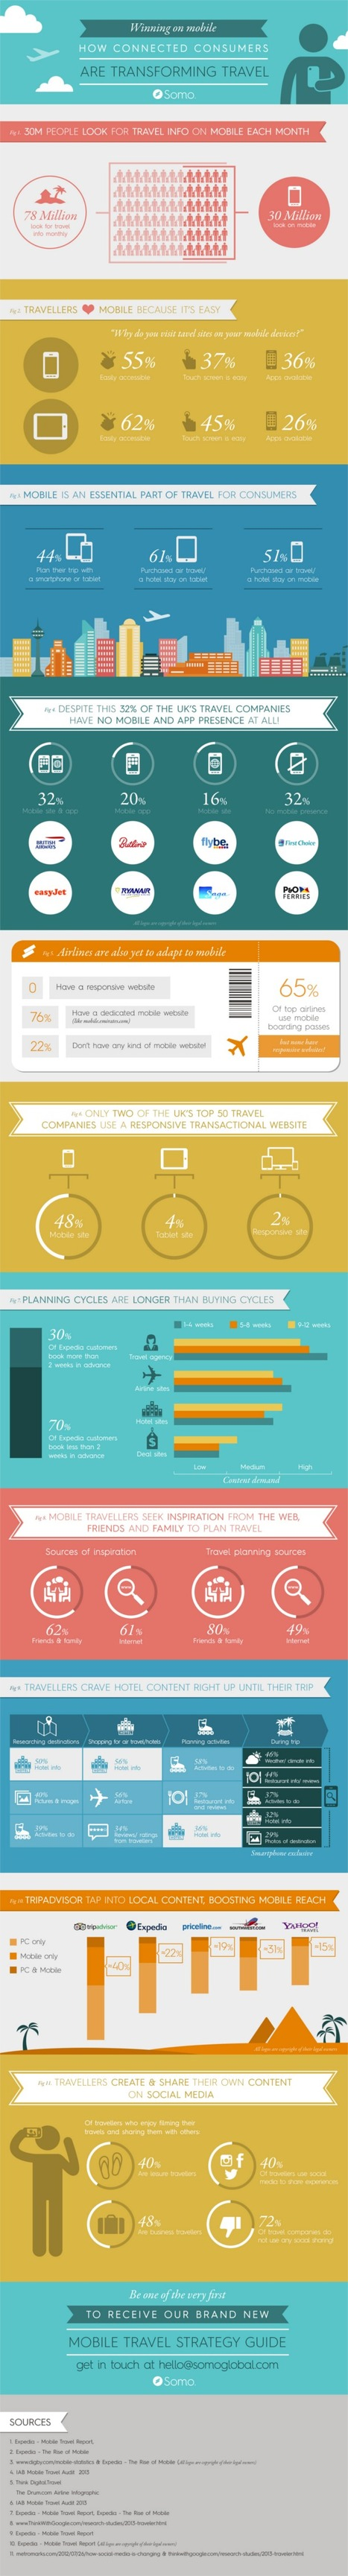 How are mobile consumers transforming travel? #Infographic | MarketingHits | Scoop.it